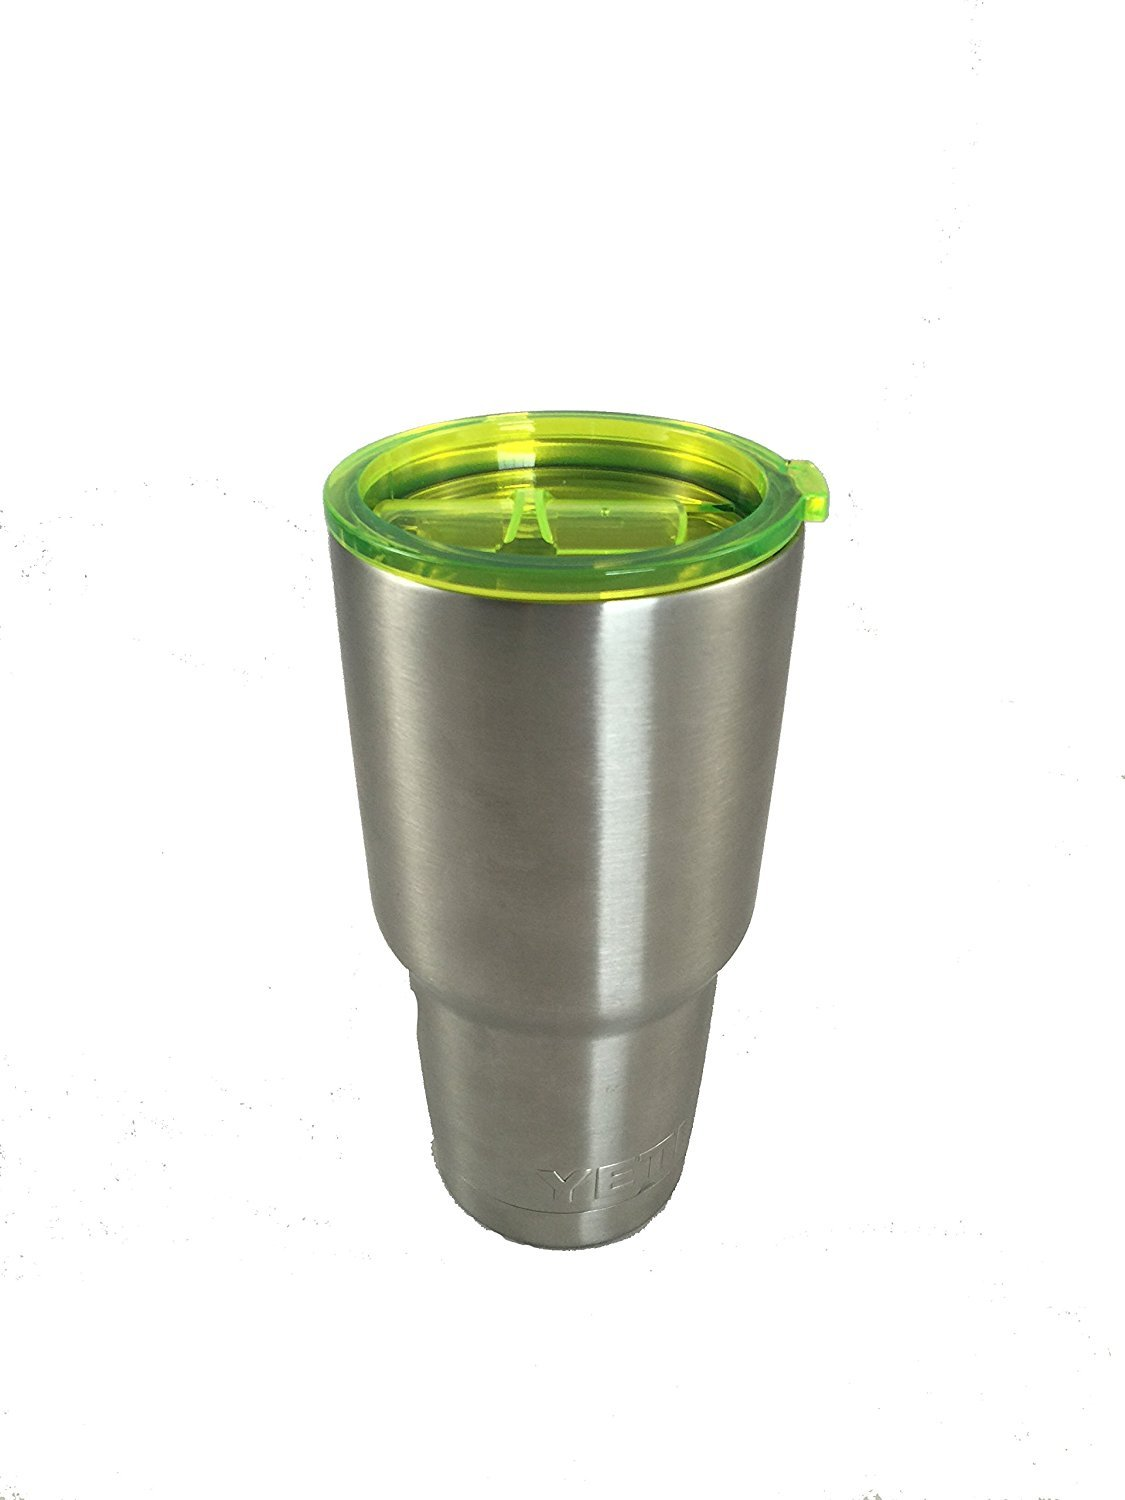 Fits RTIC TOPR Colored Universal Replacement Lid for Stainless Steel Tumbler Splash Resistant Easy-Sip Slide Closure Ozark /& more 30oz, Lime Green Straw Friendly Travel Cover Yeti Boss